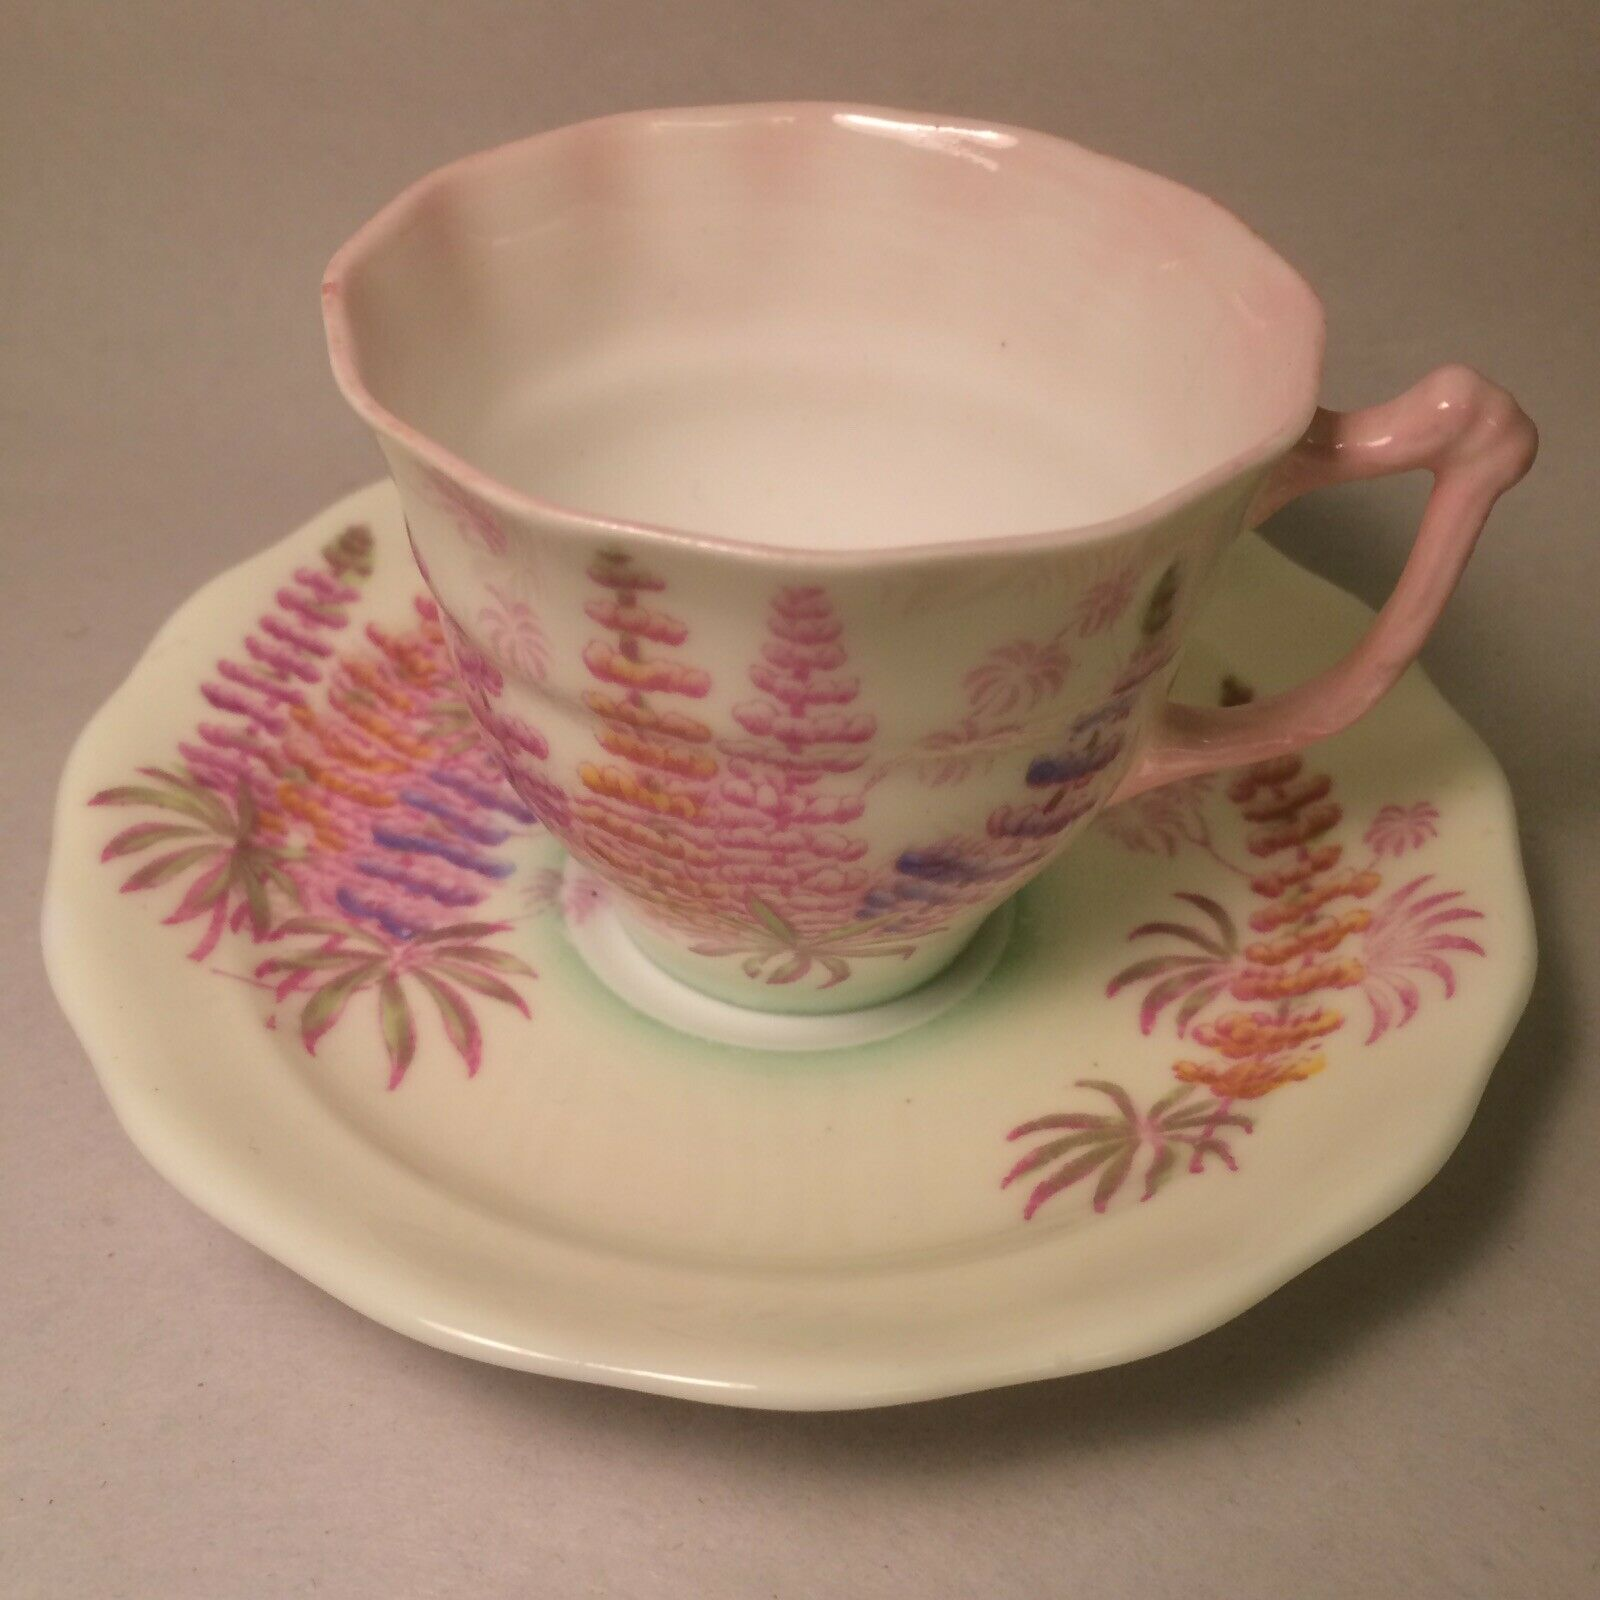 Vintage Old Royal Bone China Inner Rose Pattern 3484 Green Cup Saucer England For Sale Online Ebay